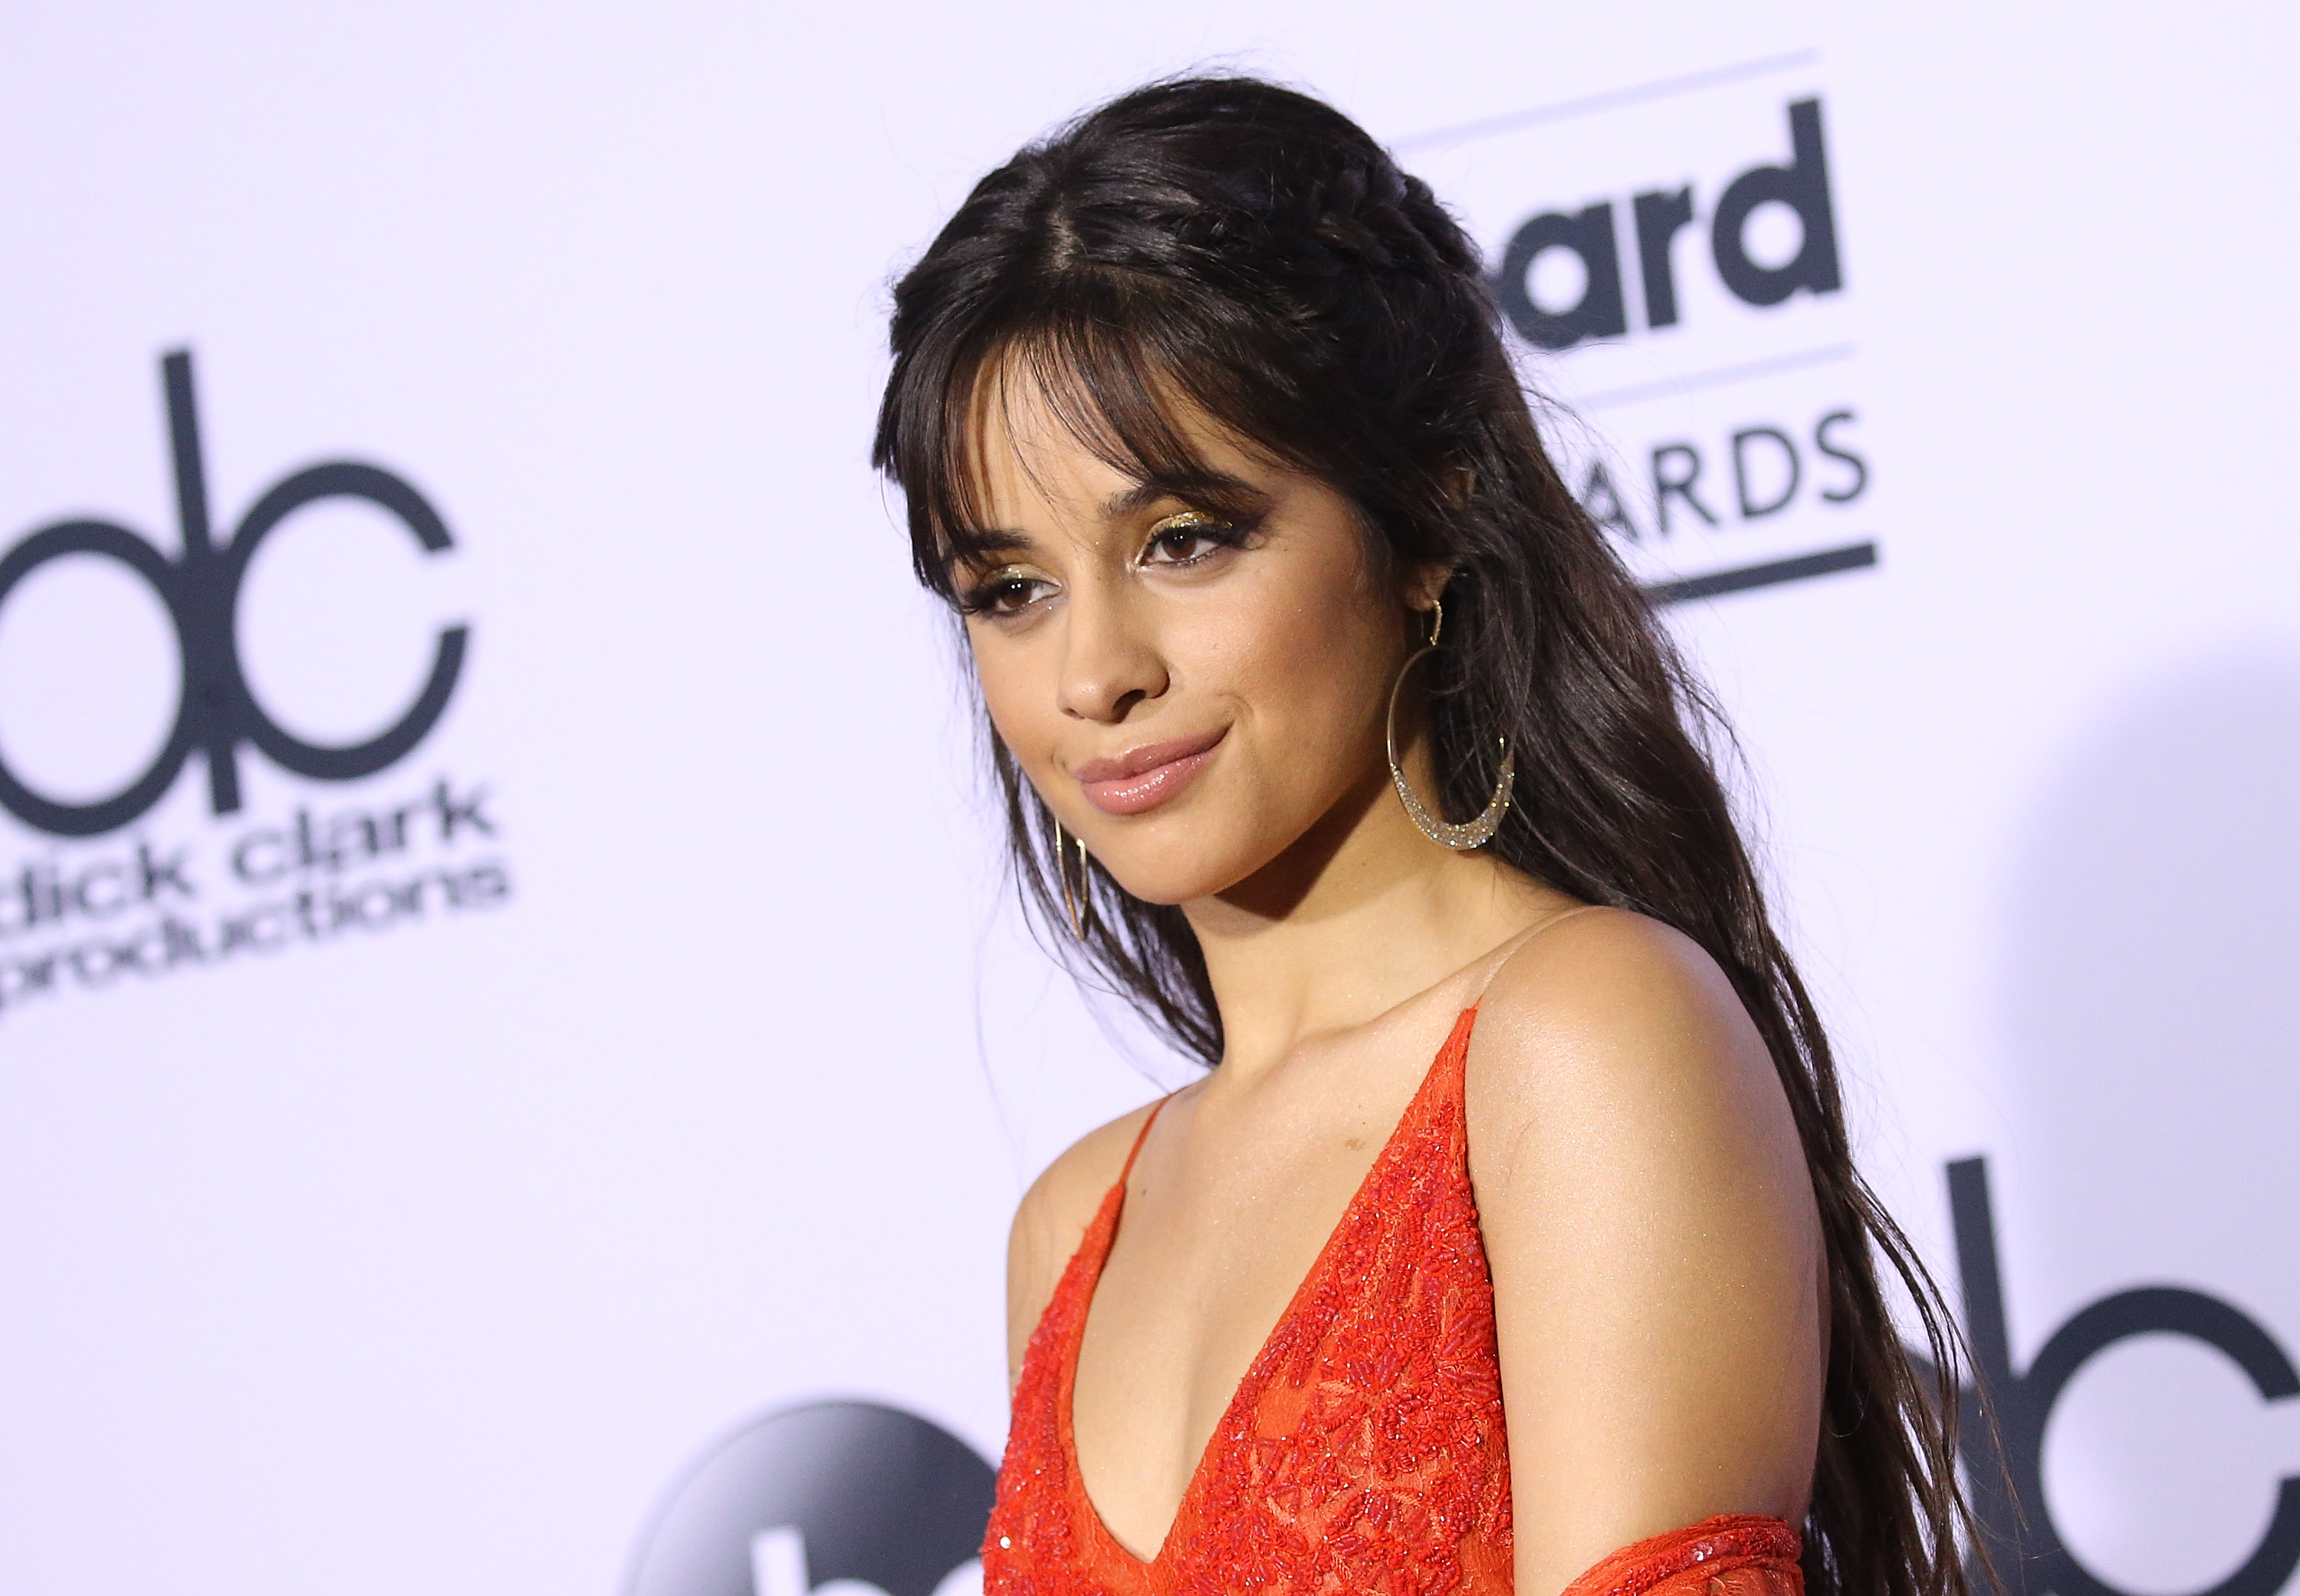 Camila Cabello attends the 2017 Billboard Music Awards  in Las Vegas, Nevada on May 21, 2017.